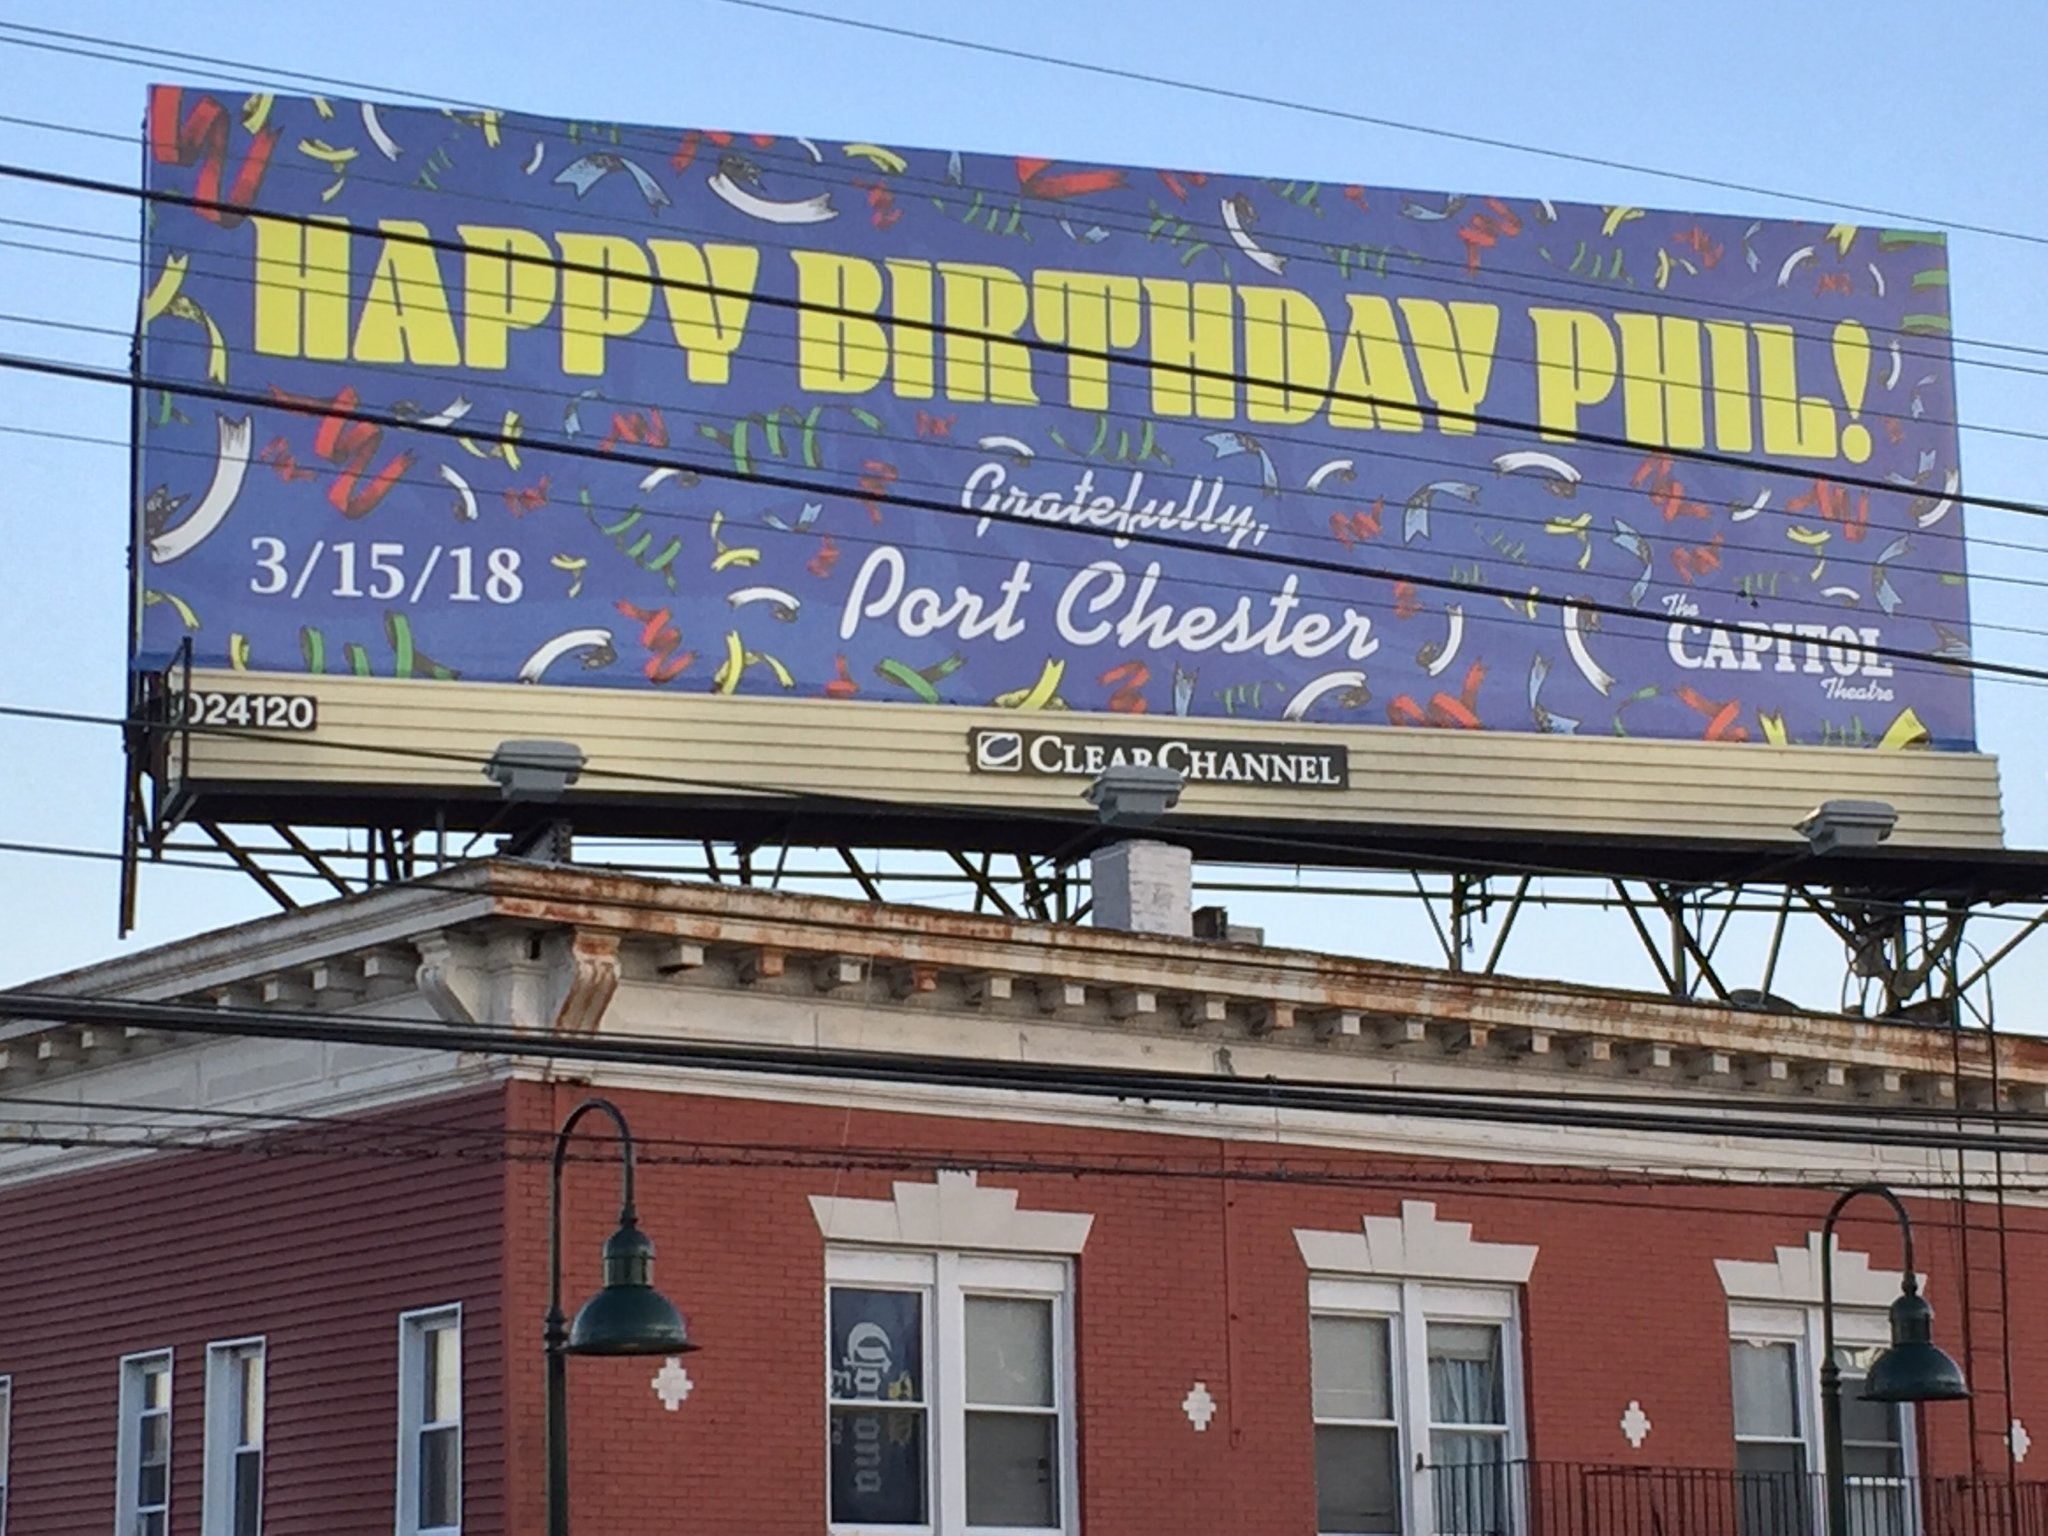 Wow, happy birthday Phil Lesh.  Nice sign in Port Chester.